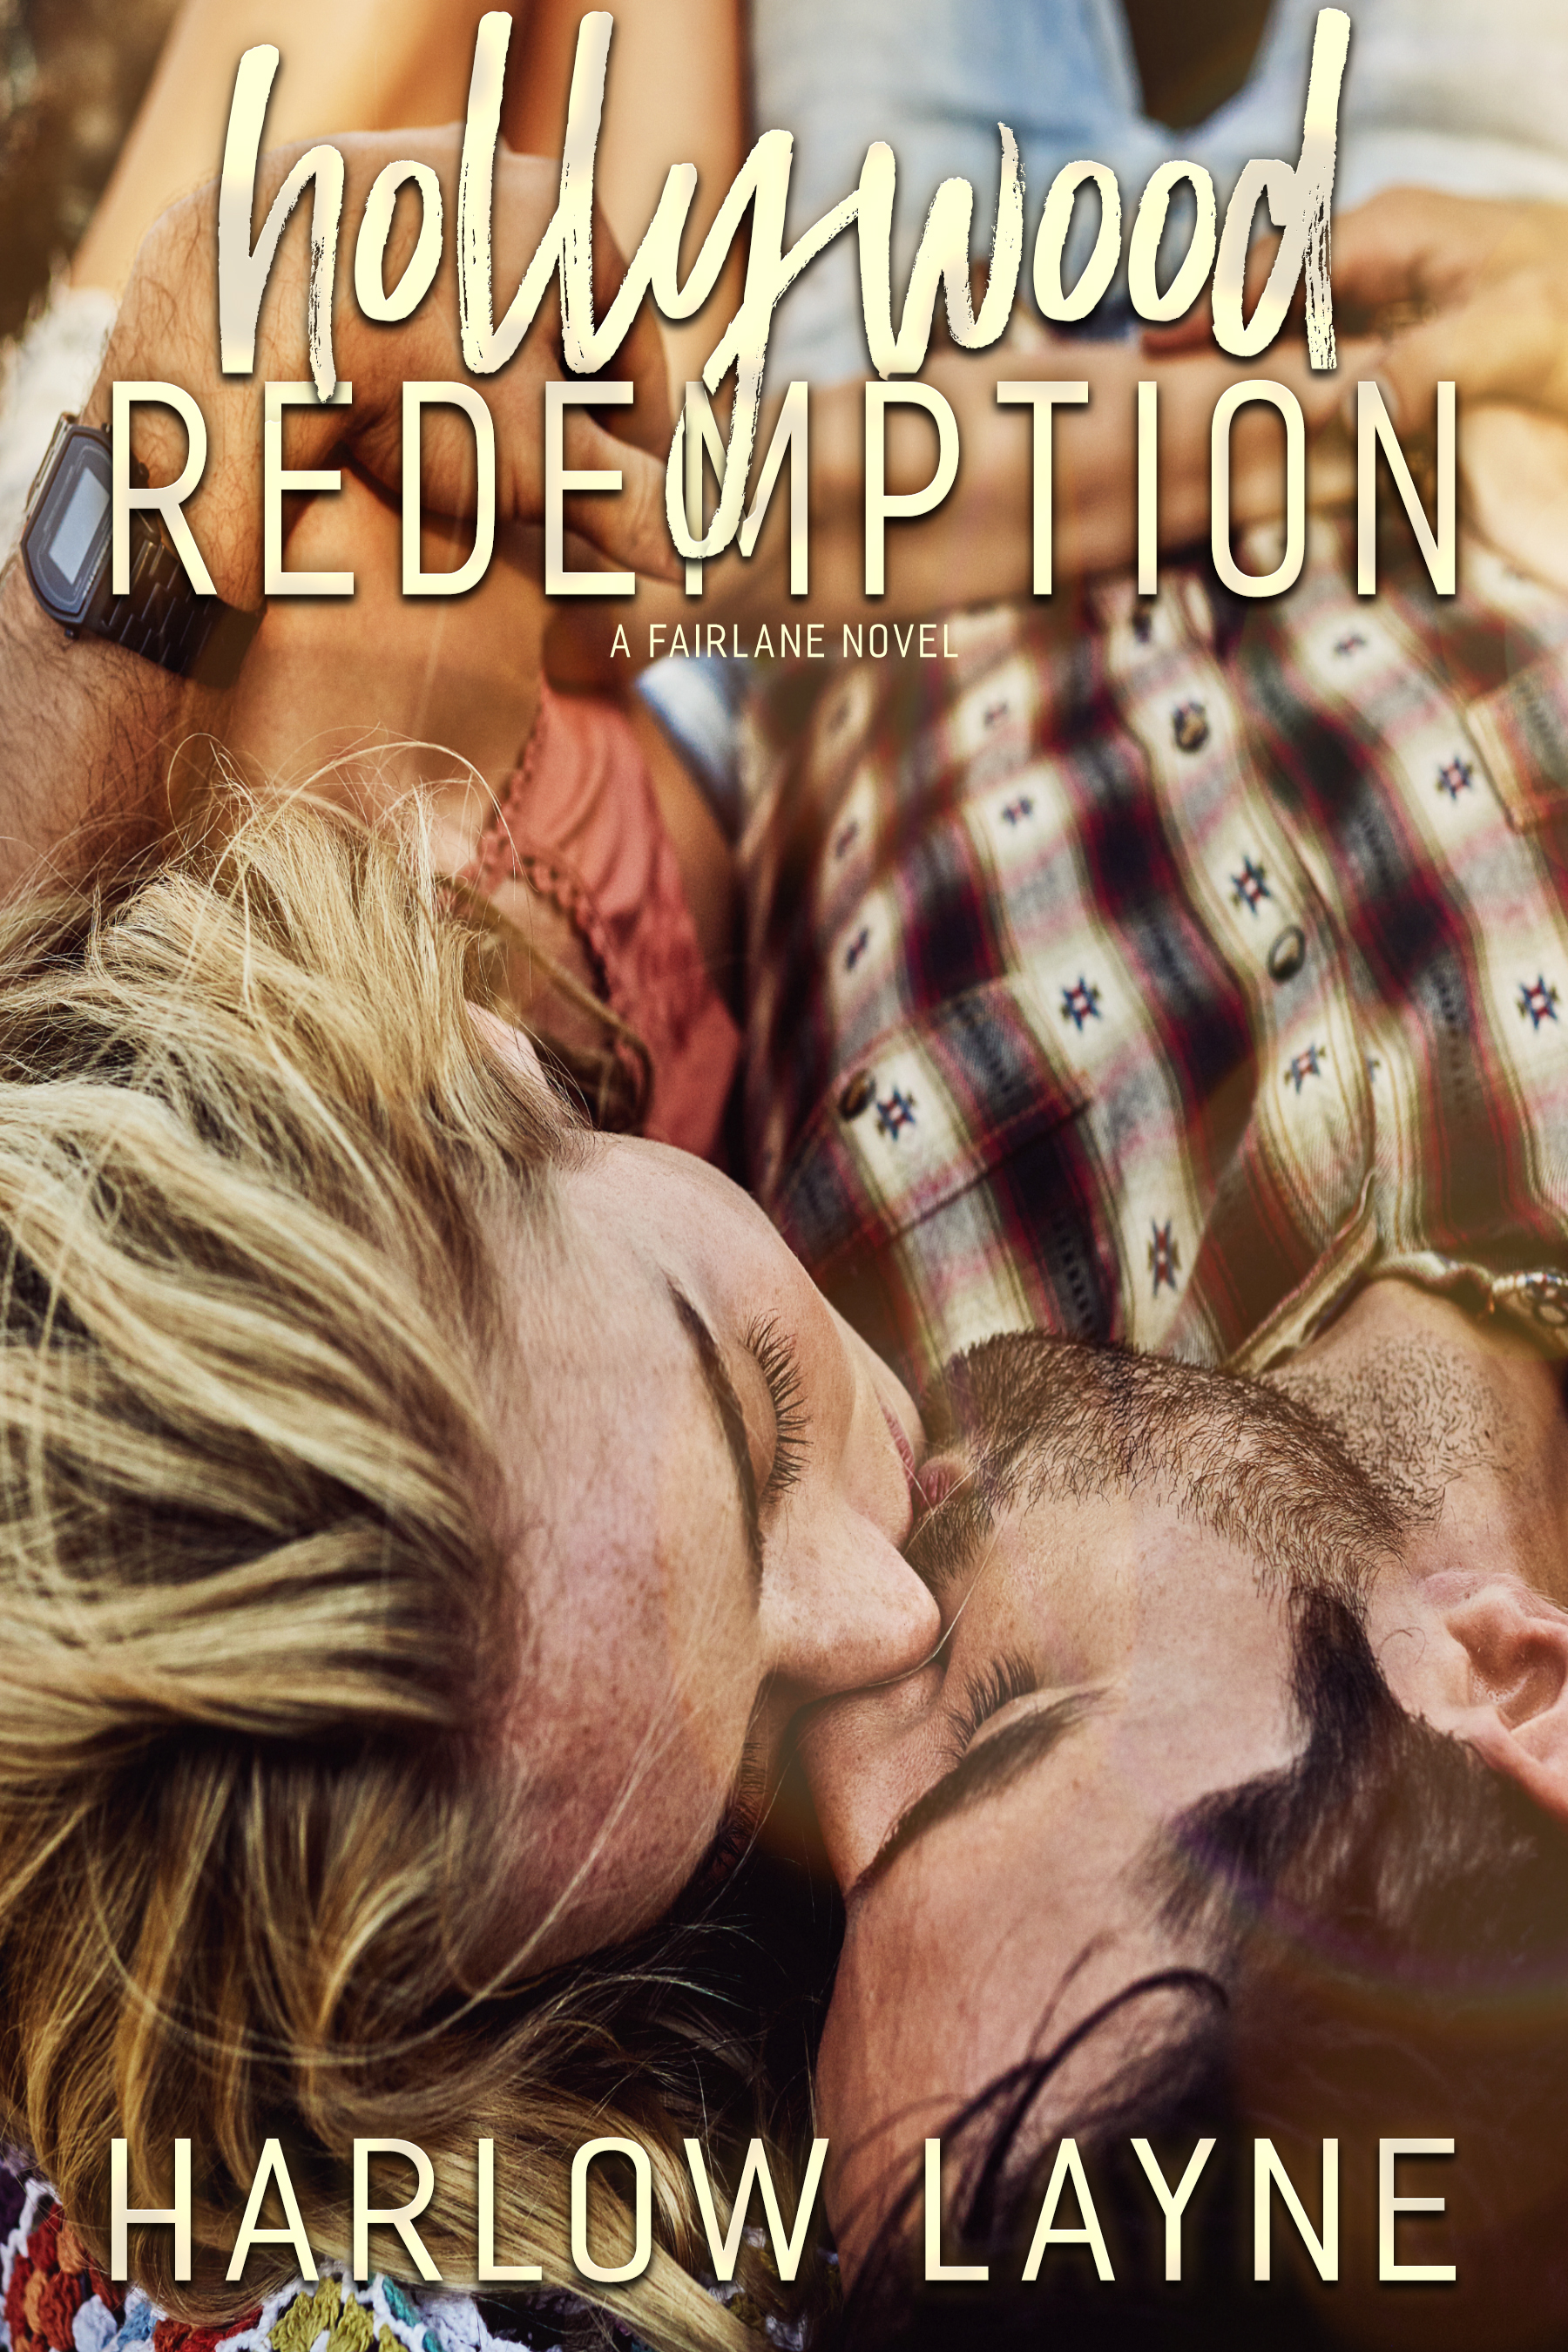 HOLLYWOOD REDEMPTION - Collided by fate and pushed apart by distance, does love even stand a chance?Alex was a single mother living in the middle of nowhere. Nothing exciting ever happened here, unless you counted being harassed by her ex-husband. Until one night changes the entire course of Alex's life.But even with all the good that occurs in her life, Alex must overcome her past demons, the very demons that caused her to become a shell of the woman she once was, that is if she wants to fight for the promise of the new life brought before her.Luke was a Hollywood actor, famous, gorgeous, and completely unlike anything I'd ever come across. He was a man on the rise, whose work ruled his life, that is until a chance encounter with Alex.He claimed to be nothing like the egotistical, selfish Hollywood type that the world made actors like him out to be, but convincing Alex of that would be tough as hell. .especially with all that she has at risk.Can two people from two very different worlds - collided by fate and pushed apart by distance get a real chance at love?